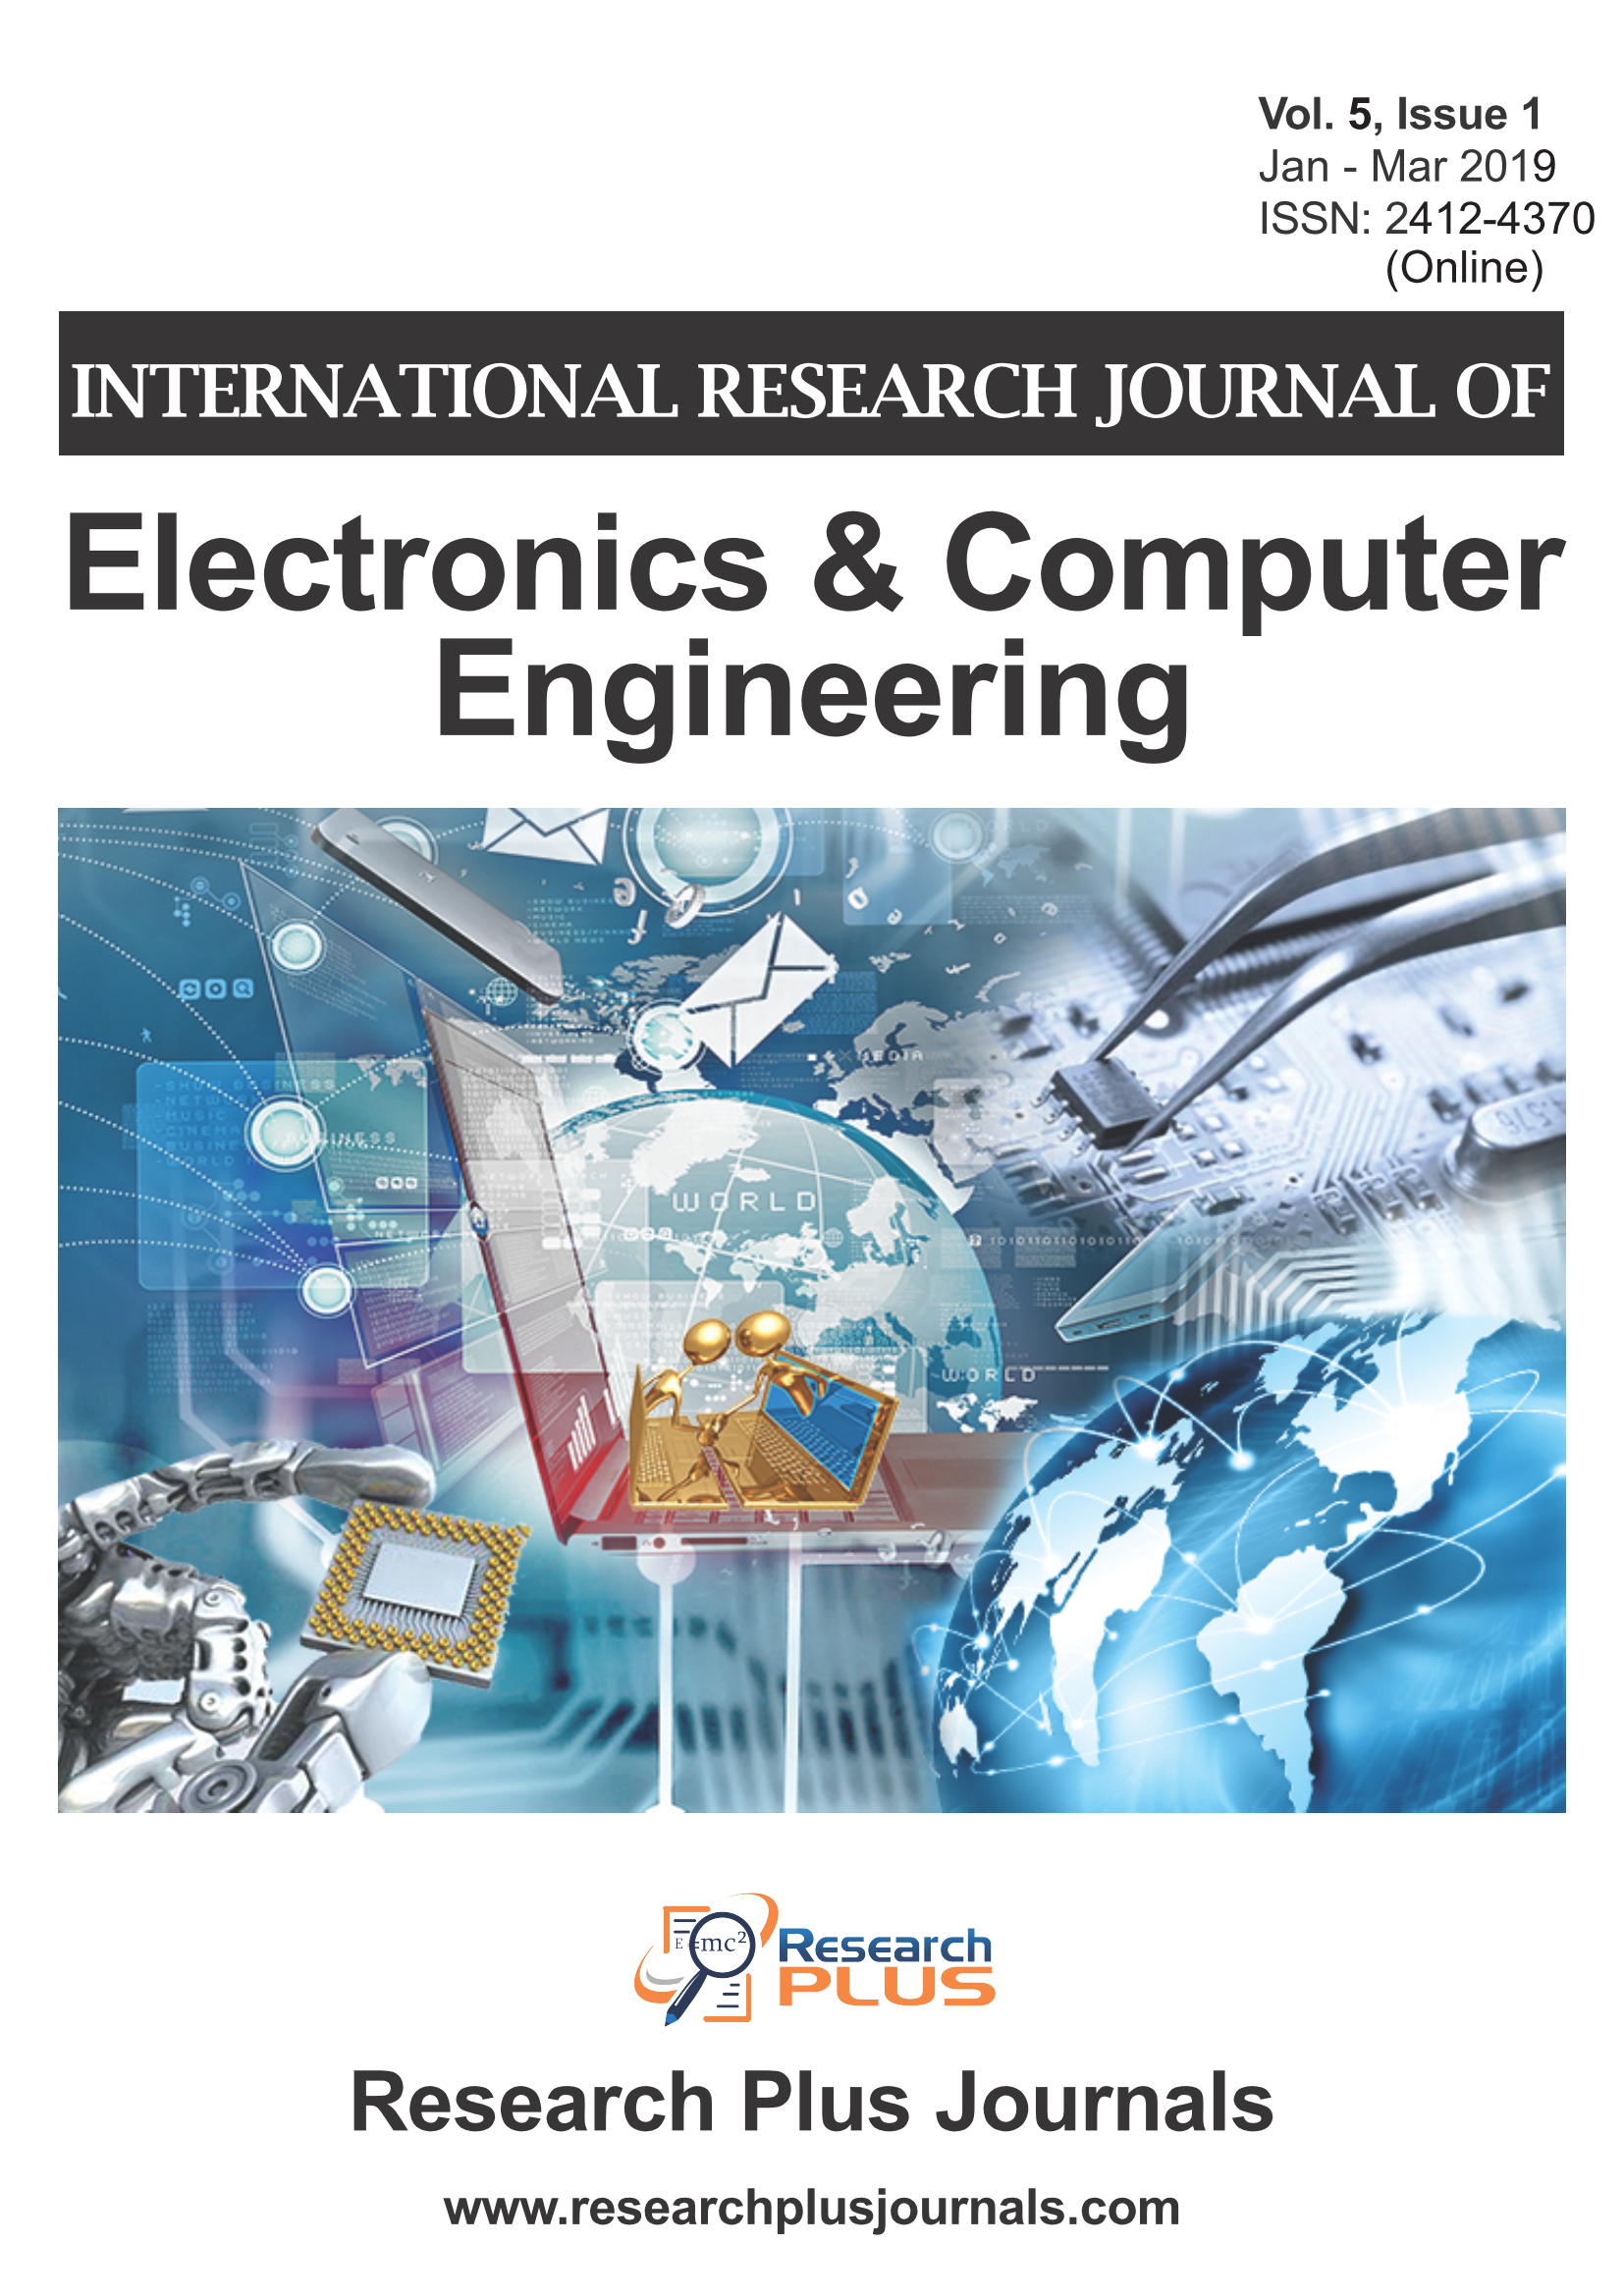 Volume 5, Issue 1, International Research Journal of Electronics & Computer Engineering (IRJECE) (Online ISSN : 2412-4370)